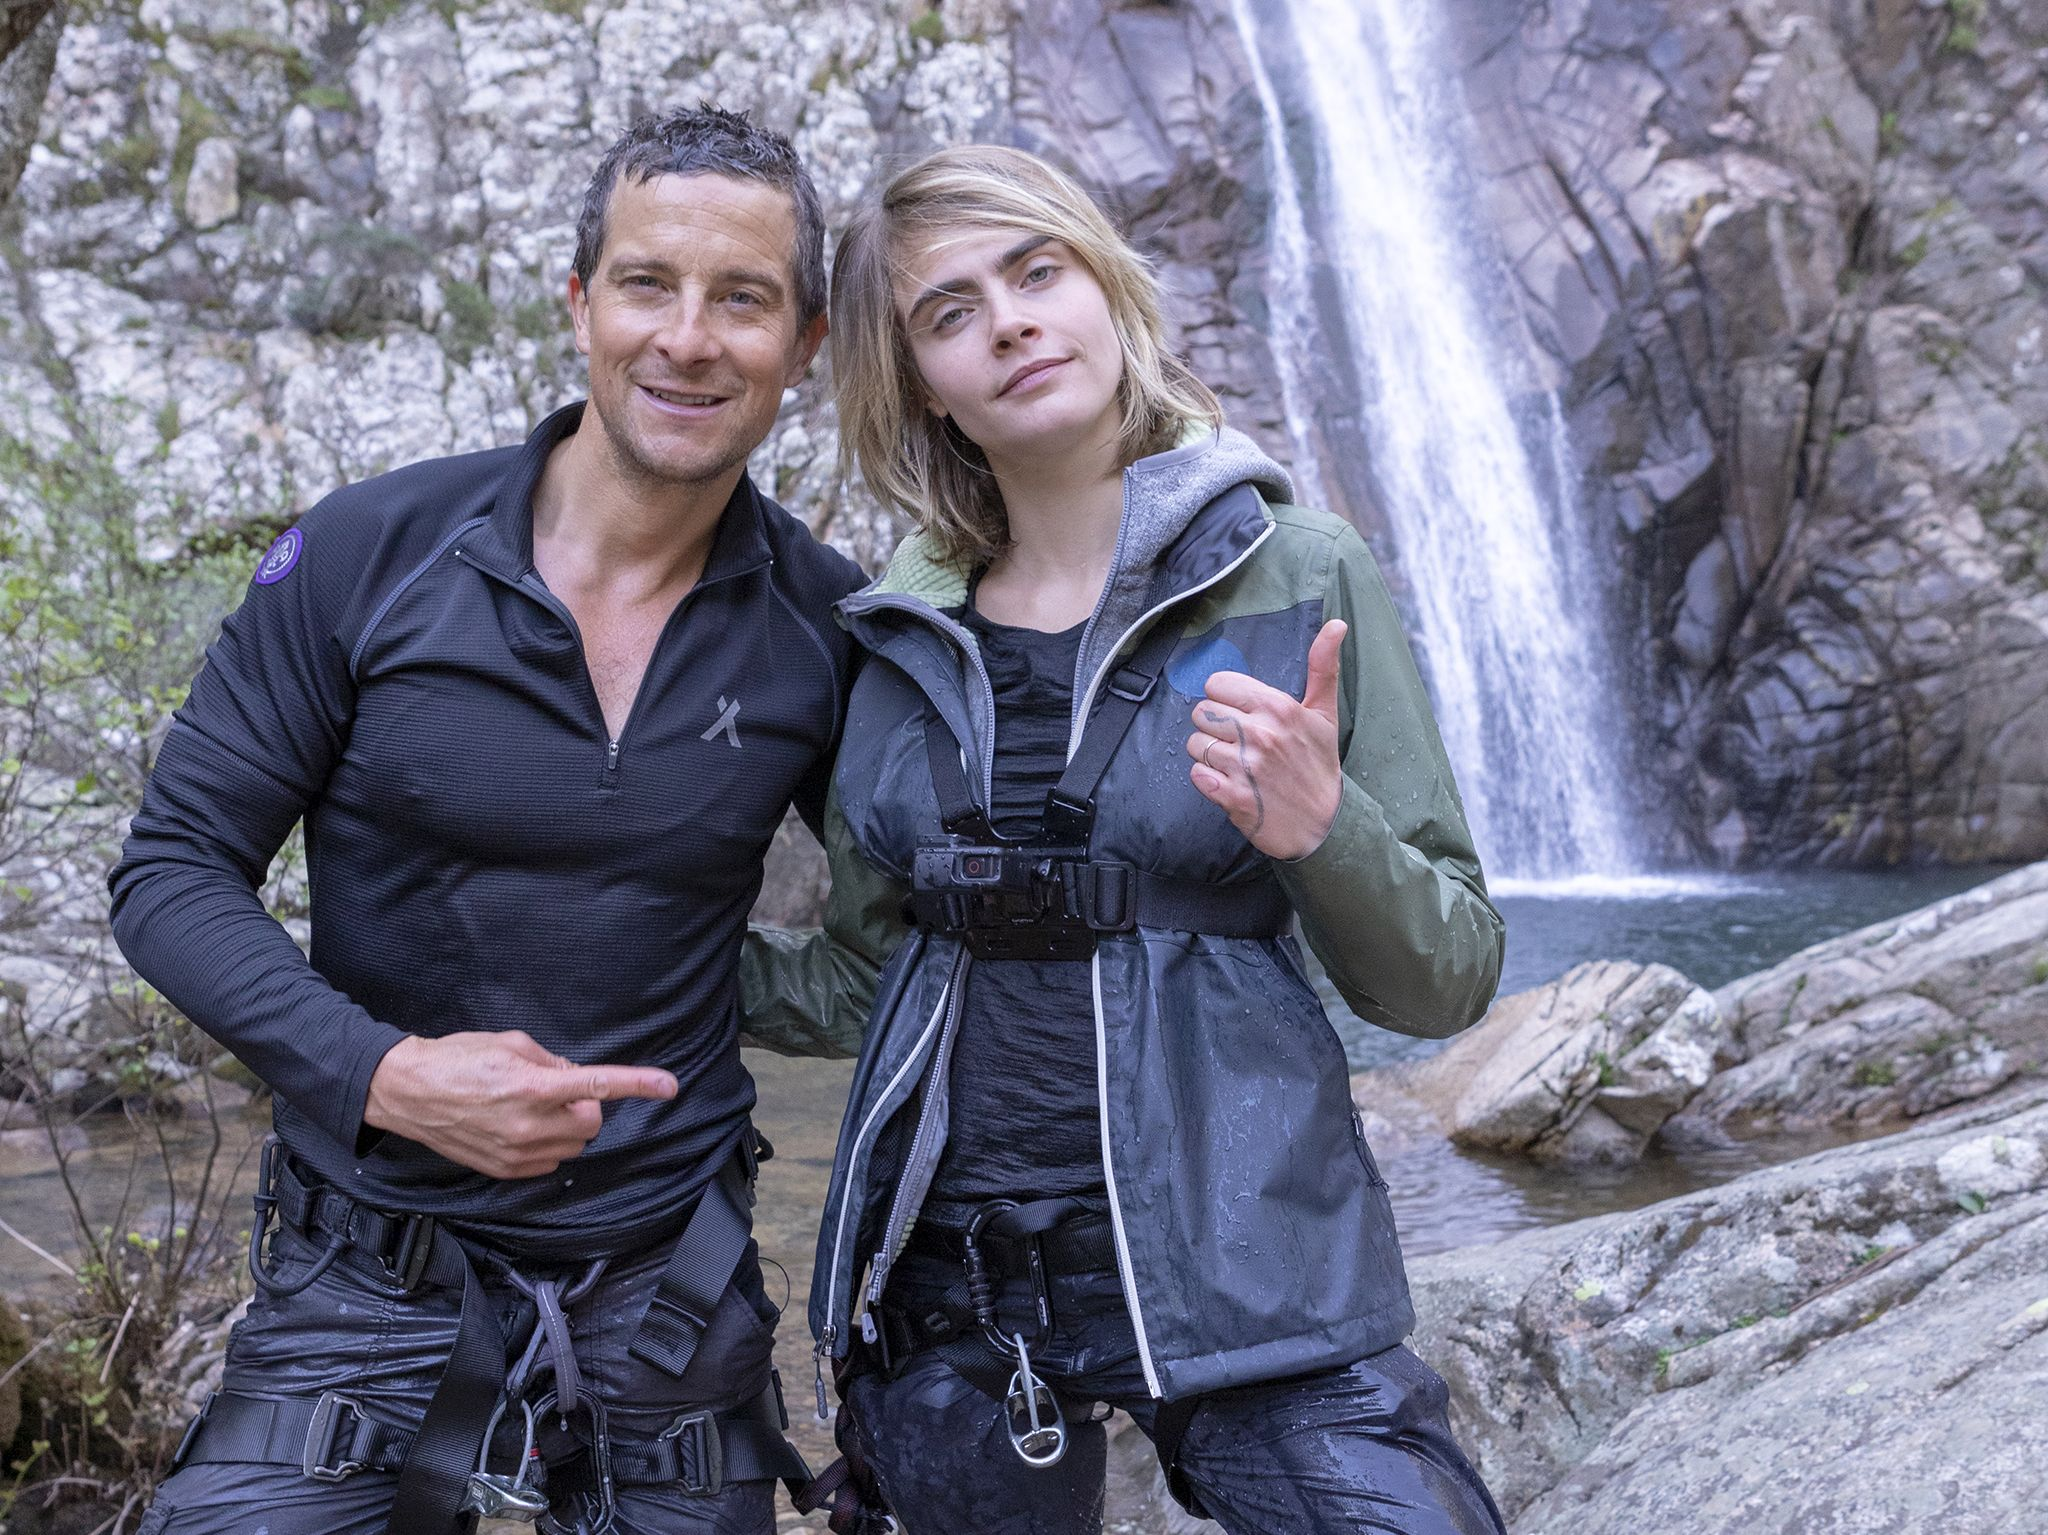 Sardinia, Italy: (L to R) Bear Grylls and Cara Delevingne about to be extracted.  This image is... [Photo of the day - November 2019]